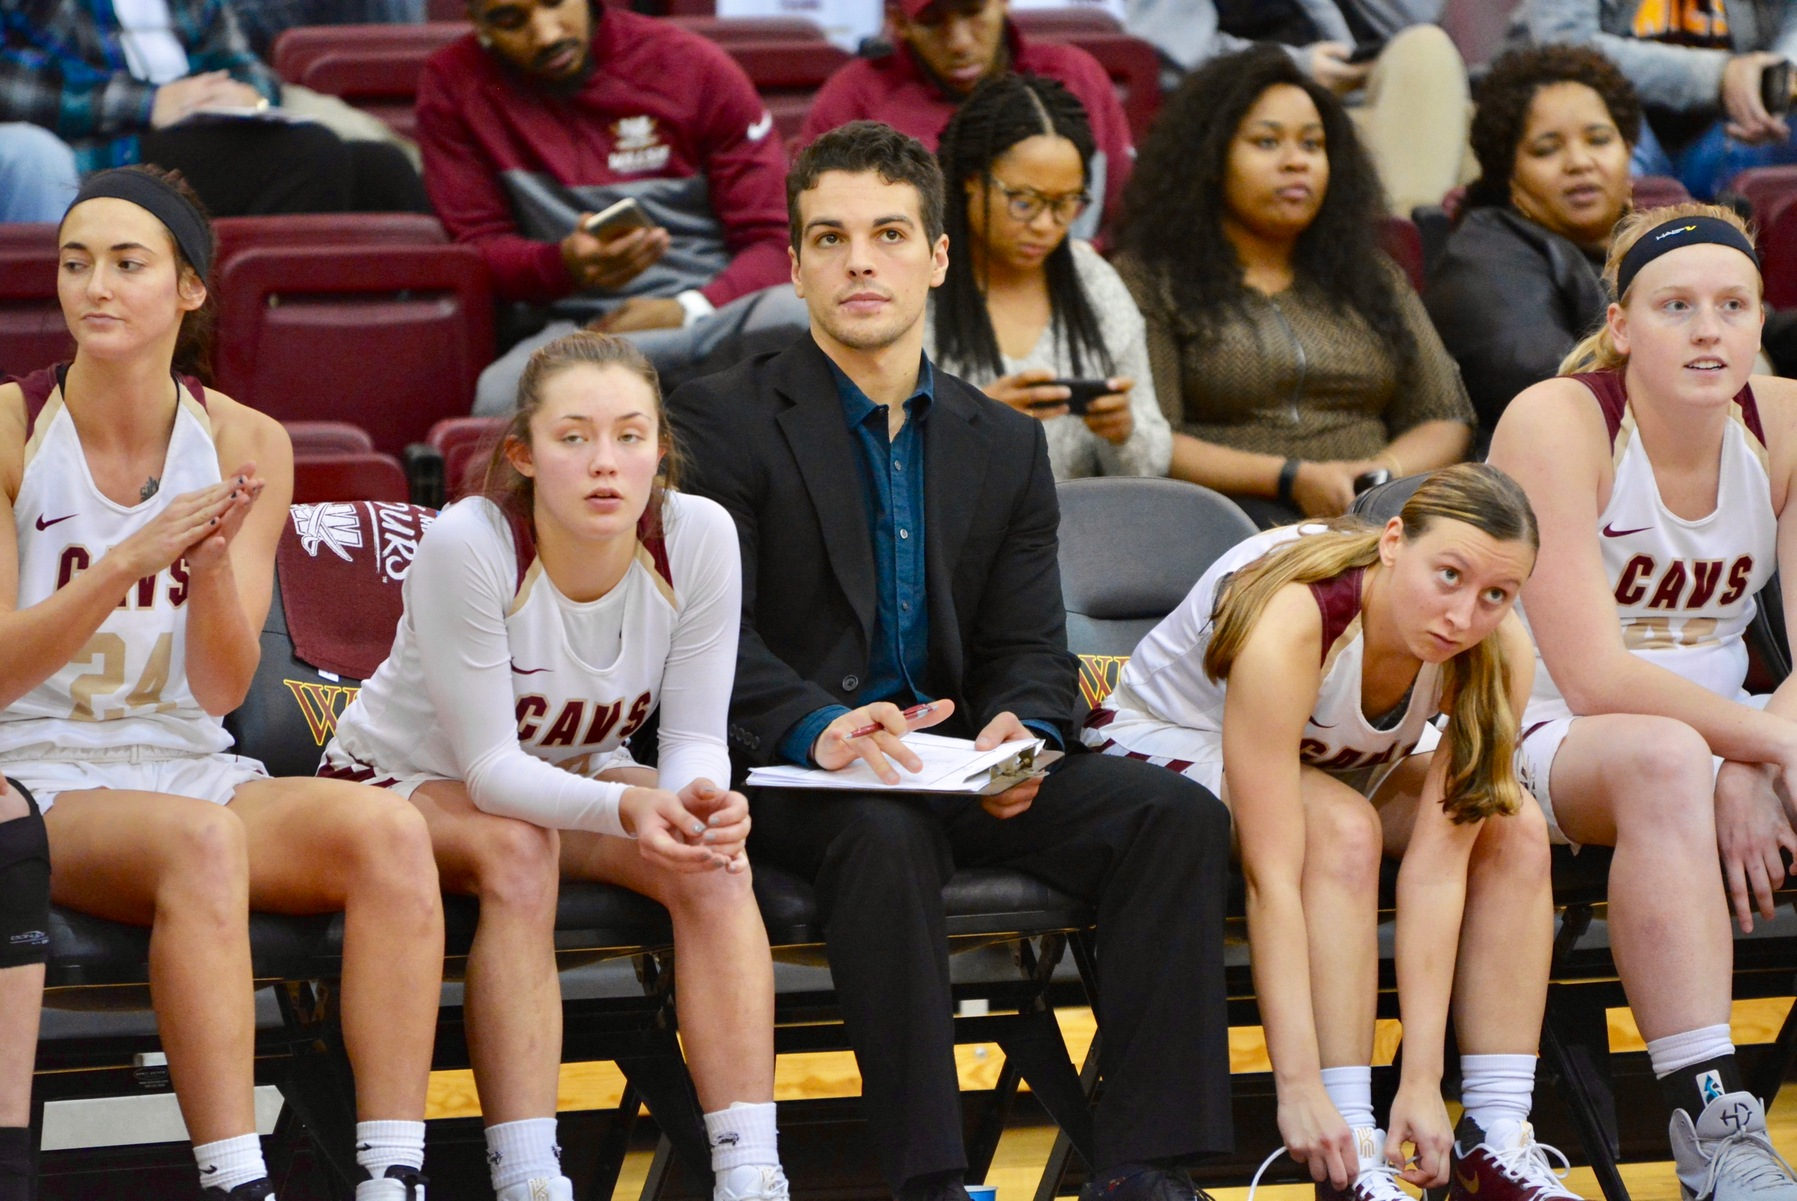 Montello Tabbed as New Women's Basketball Coach